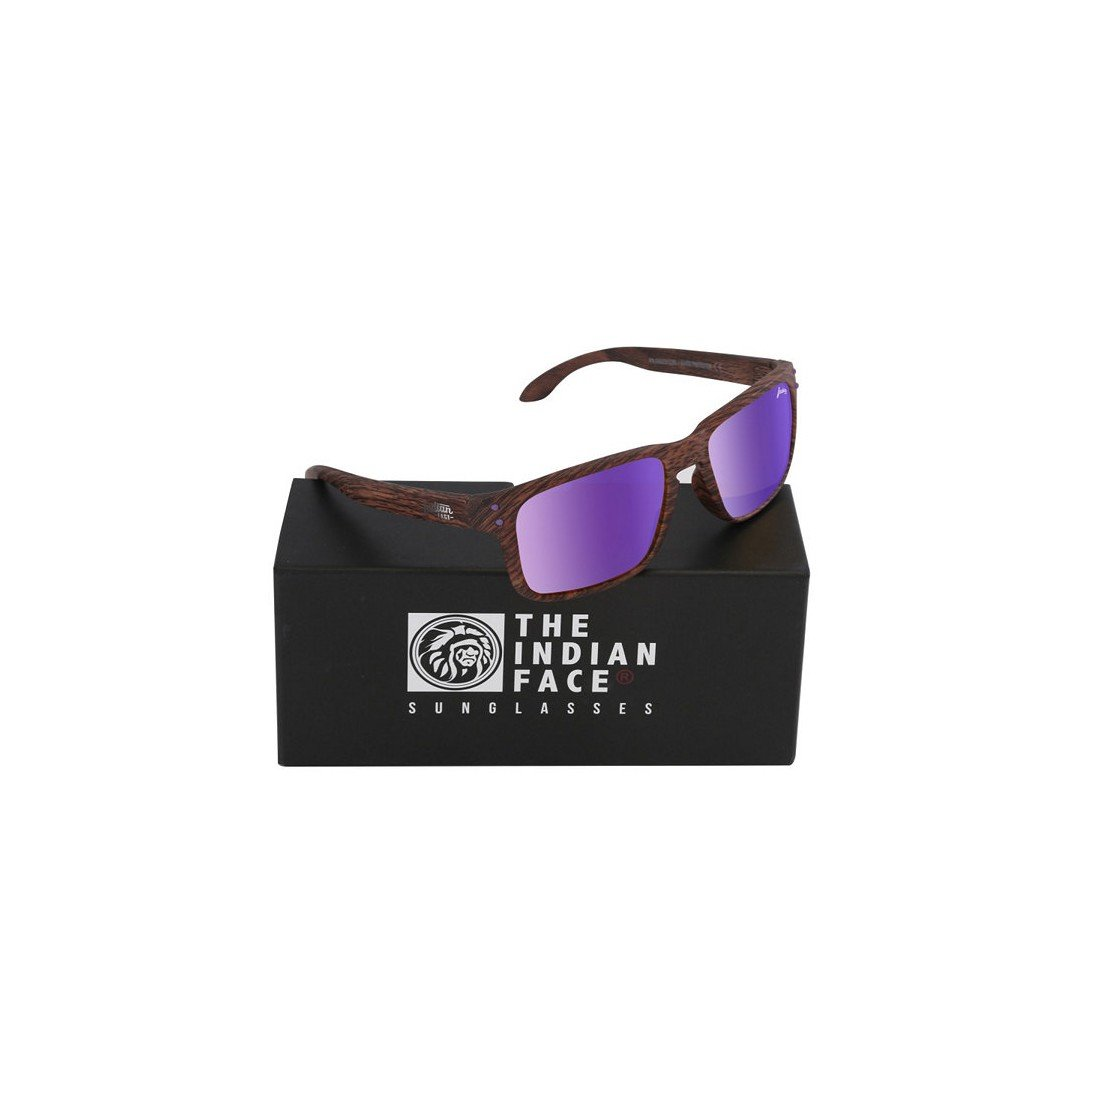 Gafas de Sol Unisex The Indian Face Freeride Spirit Marrón Madera